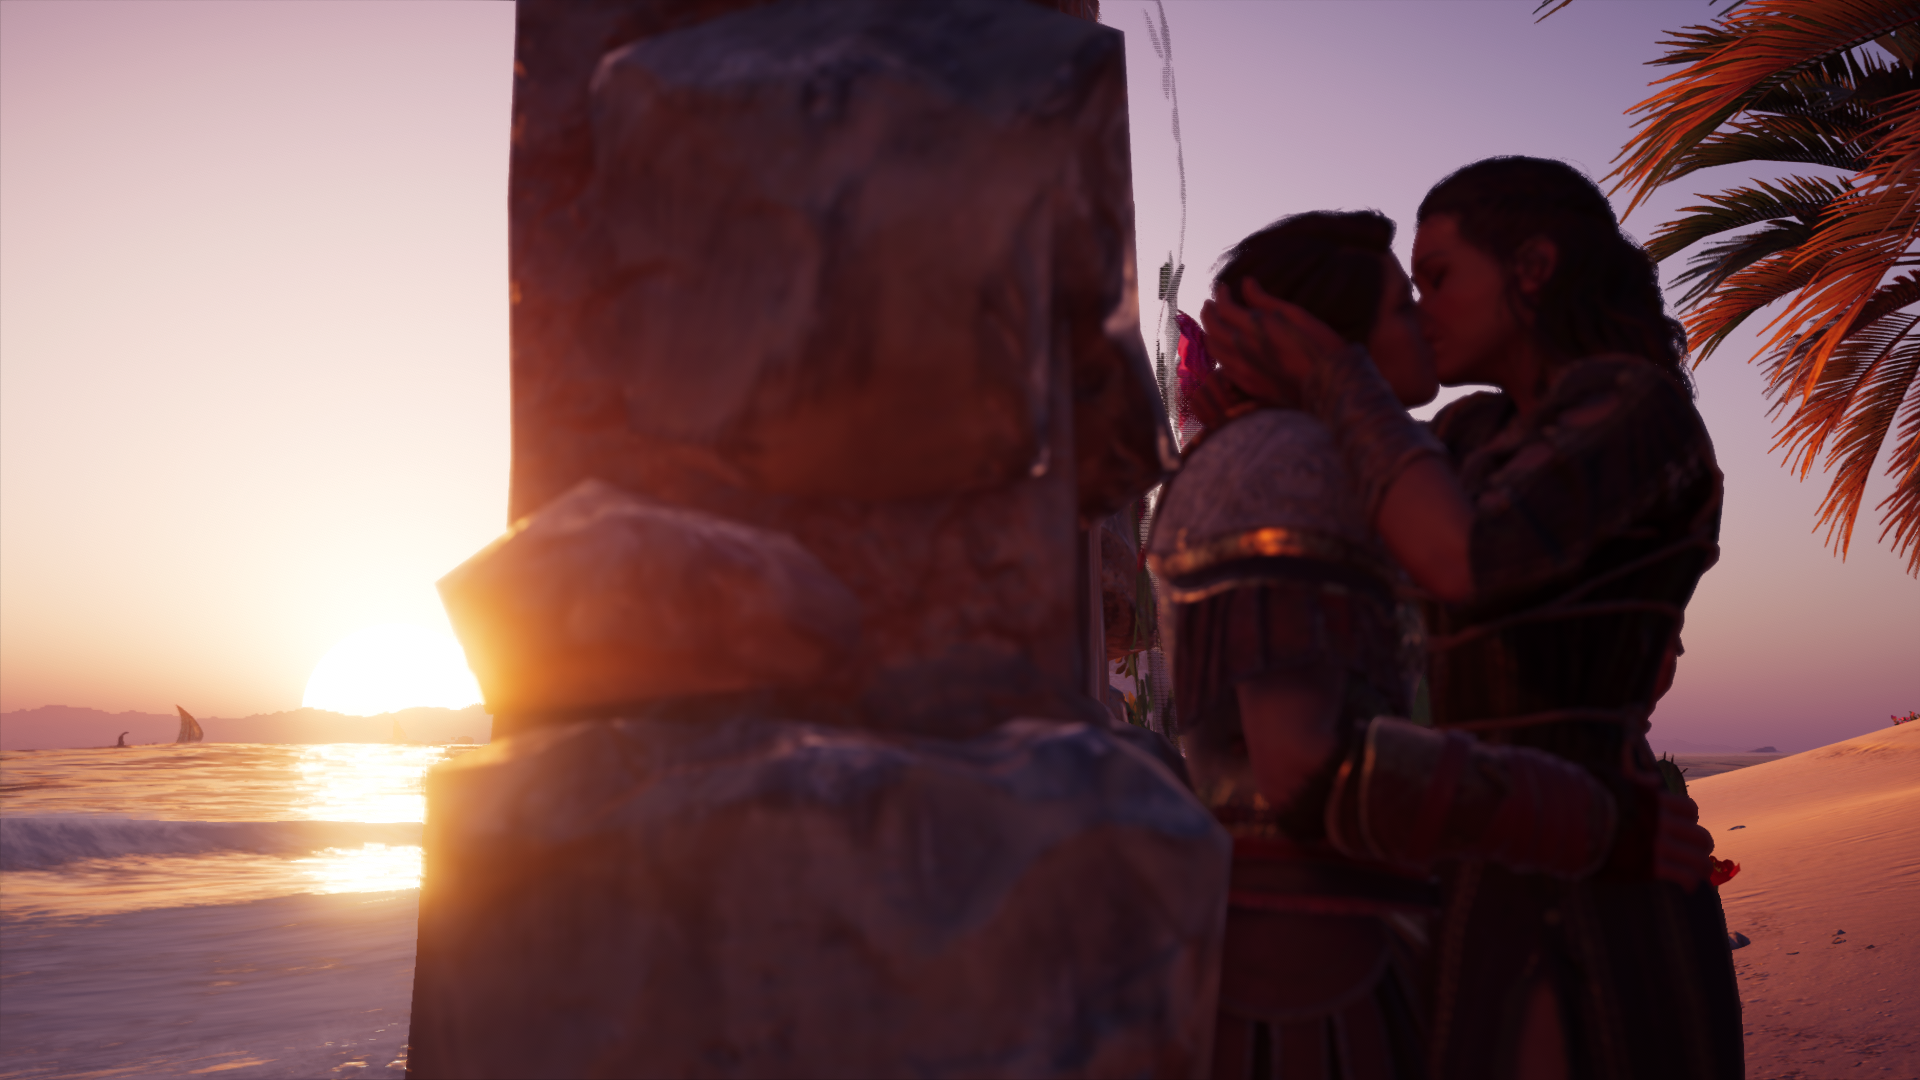 Assassin's Creed Odyssey Turn Delay Into A Joke